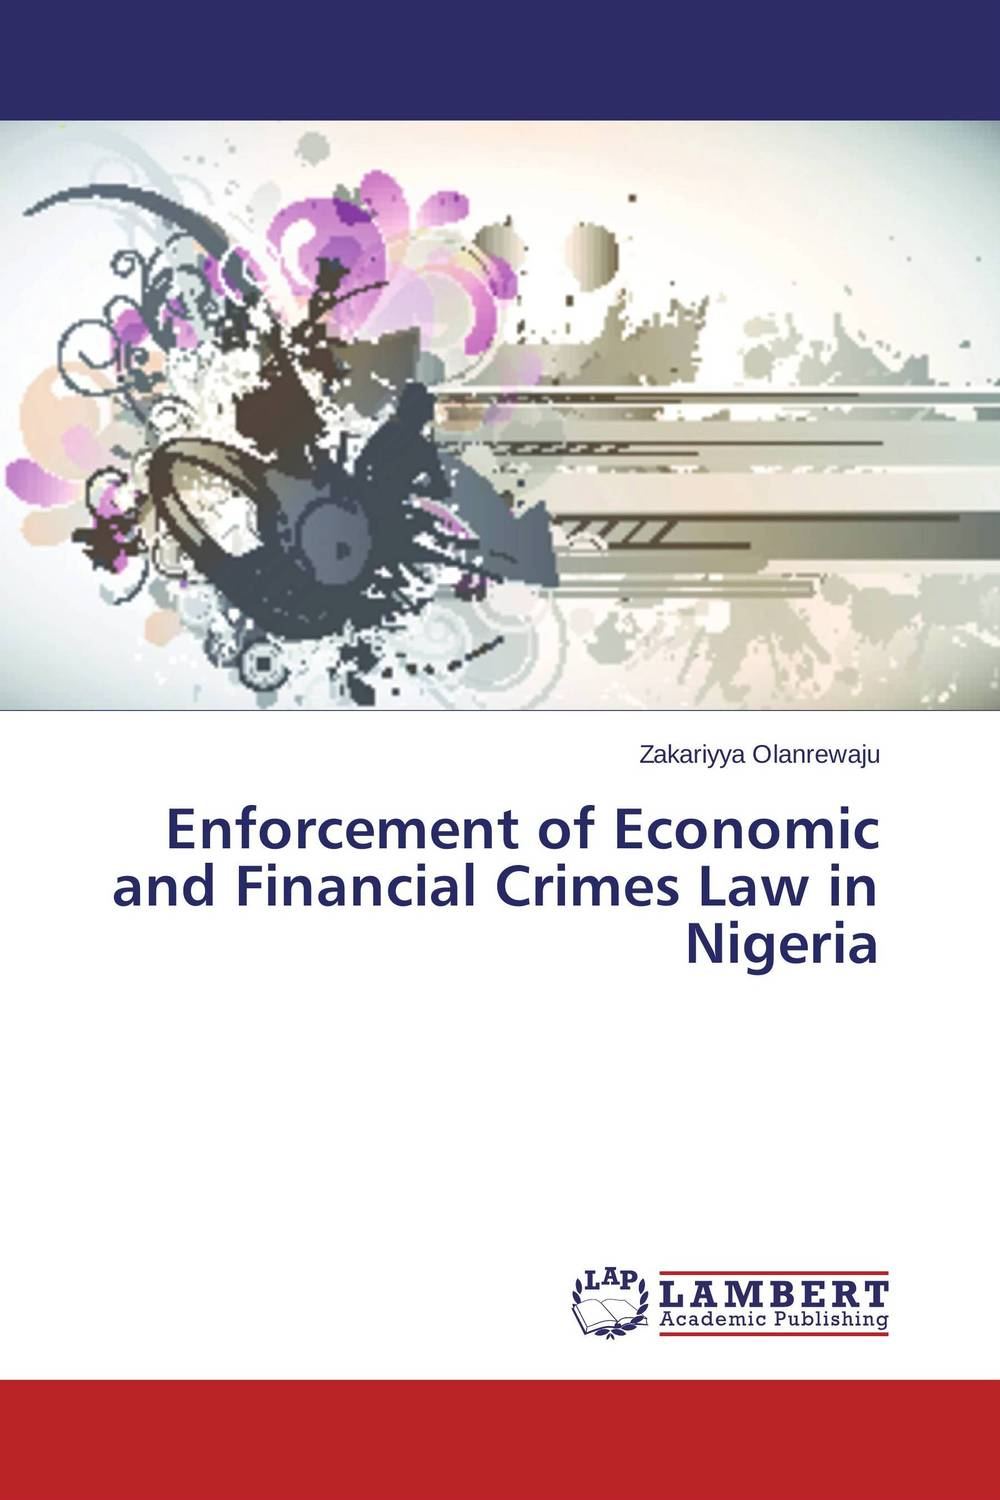 impact of ict on accounting practice in nigeria The role of ict in nigerian legal profession of ict [2] in nigeria, its impact are not limited to of legal studies and practice in nigeria.